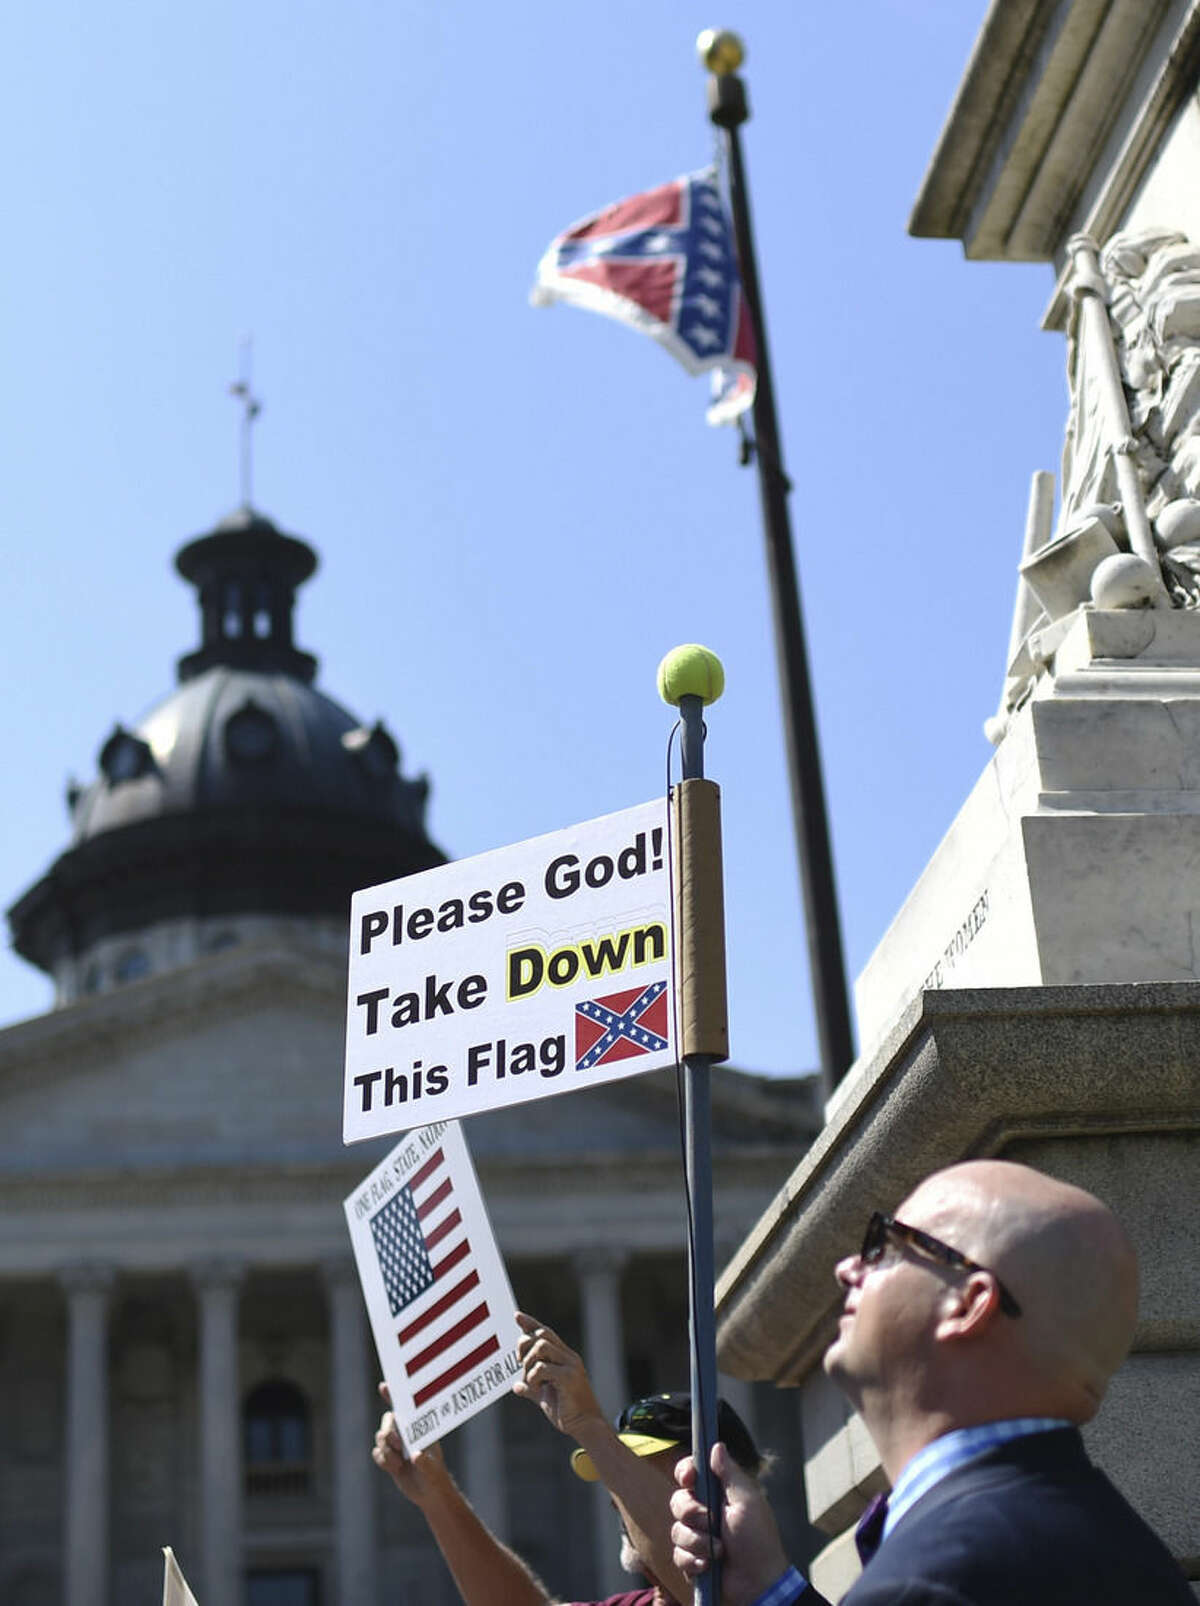 Christian Mergner, of Columbia, S.C., holds a sign during a rally to take down the Confederate flag at the South Carolina Statehouse, Tuesday, June 23, 2015, in Columbia, S.C. The shooting deaths of nine people at a black church in Charleston, S.C, have reignited calls for the Confederate flag flying on the grounds of the Statehouse in Columbia to come down. Rallies are being held, and politicians have joined the chorus of voices calling for its removal - an opinion that has carried political risks in the state in the past. (AP Photo/Rainier Ehrhardt)